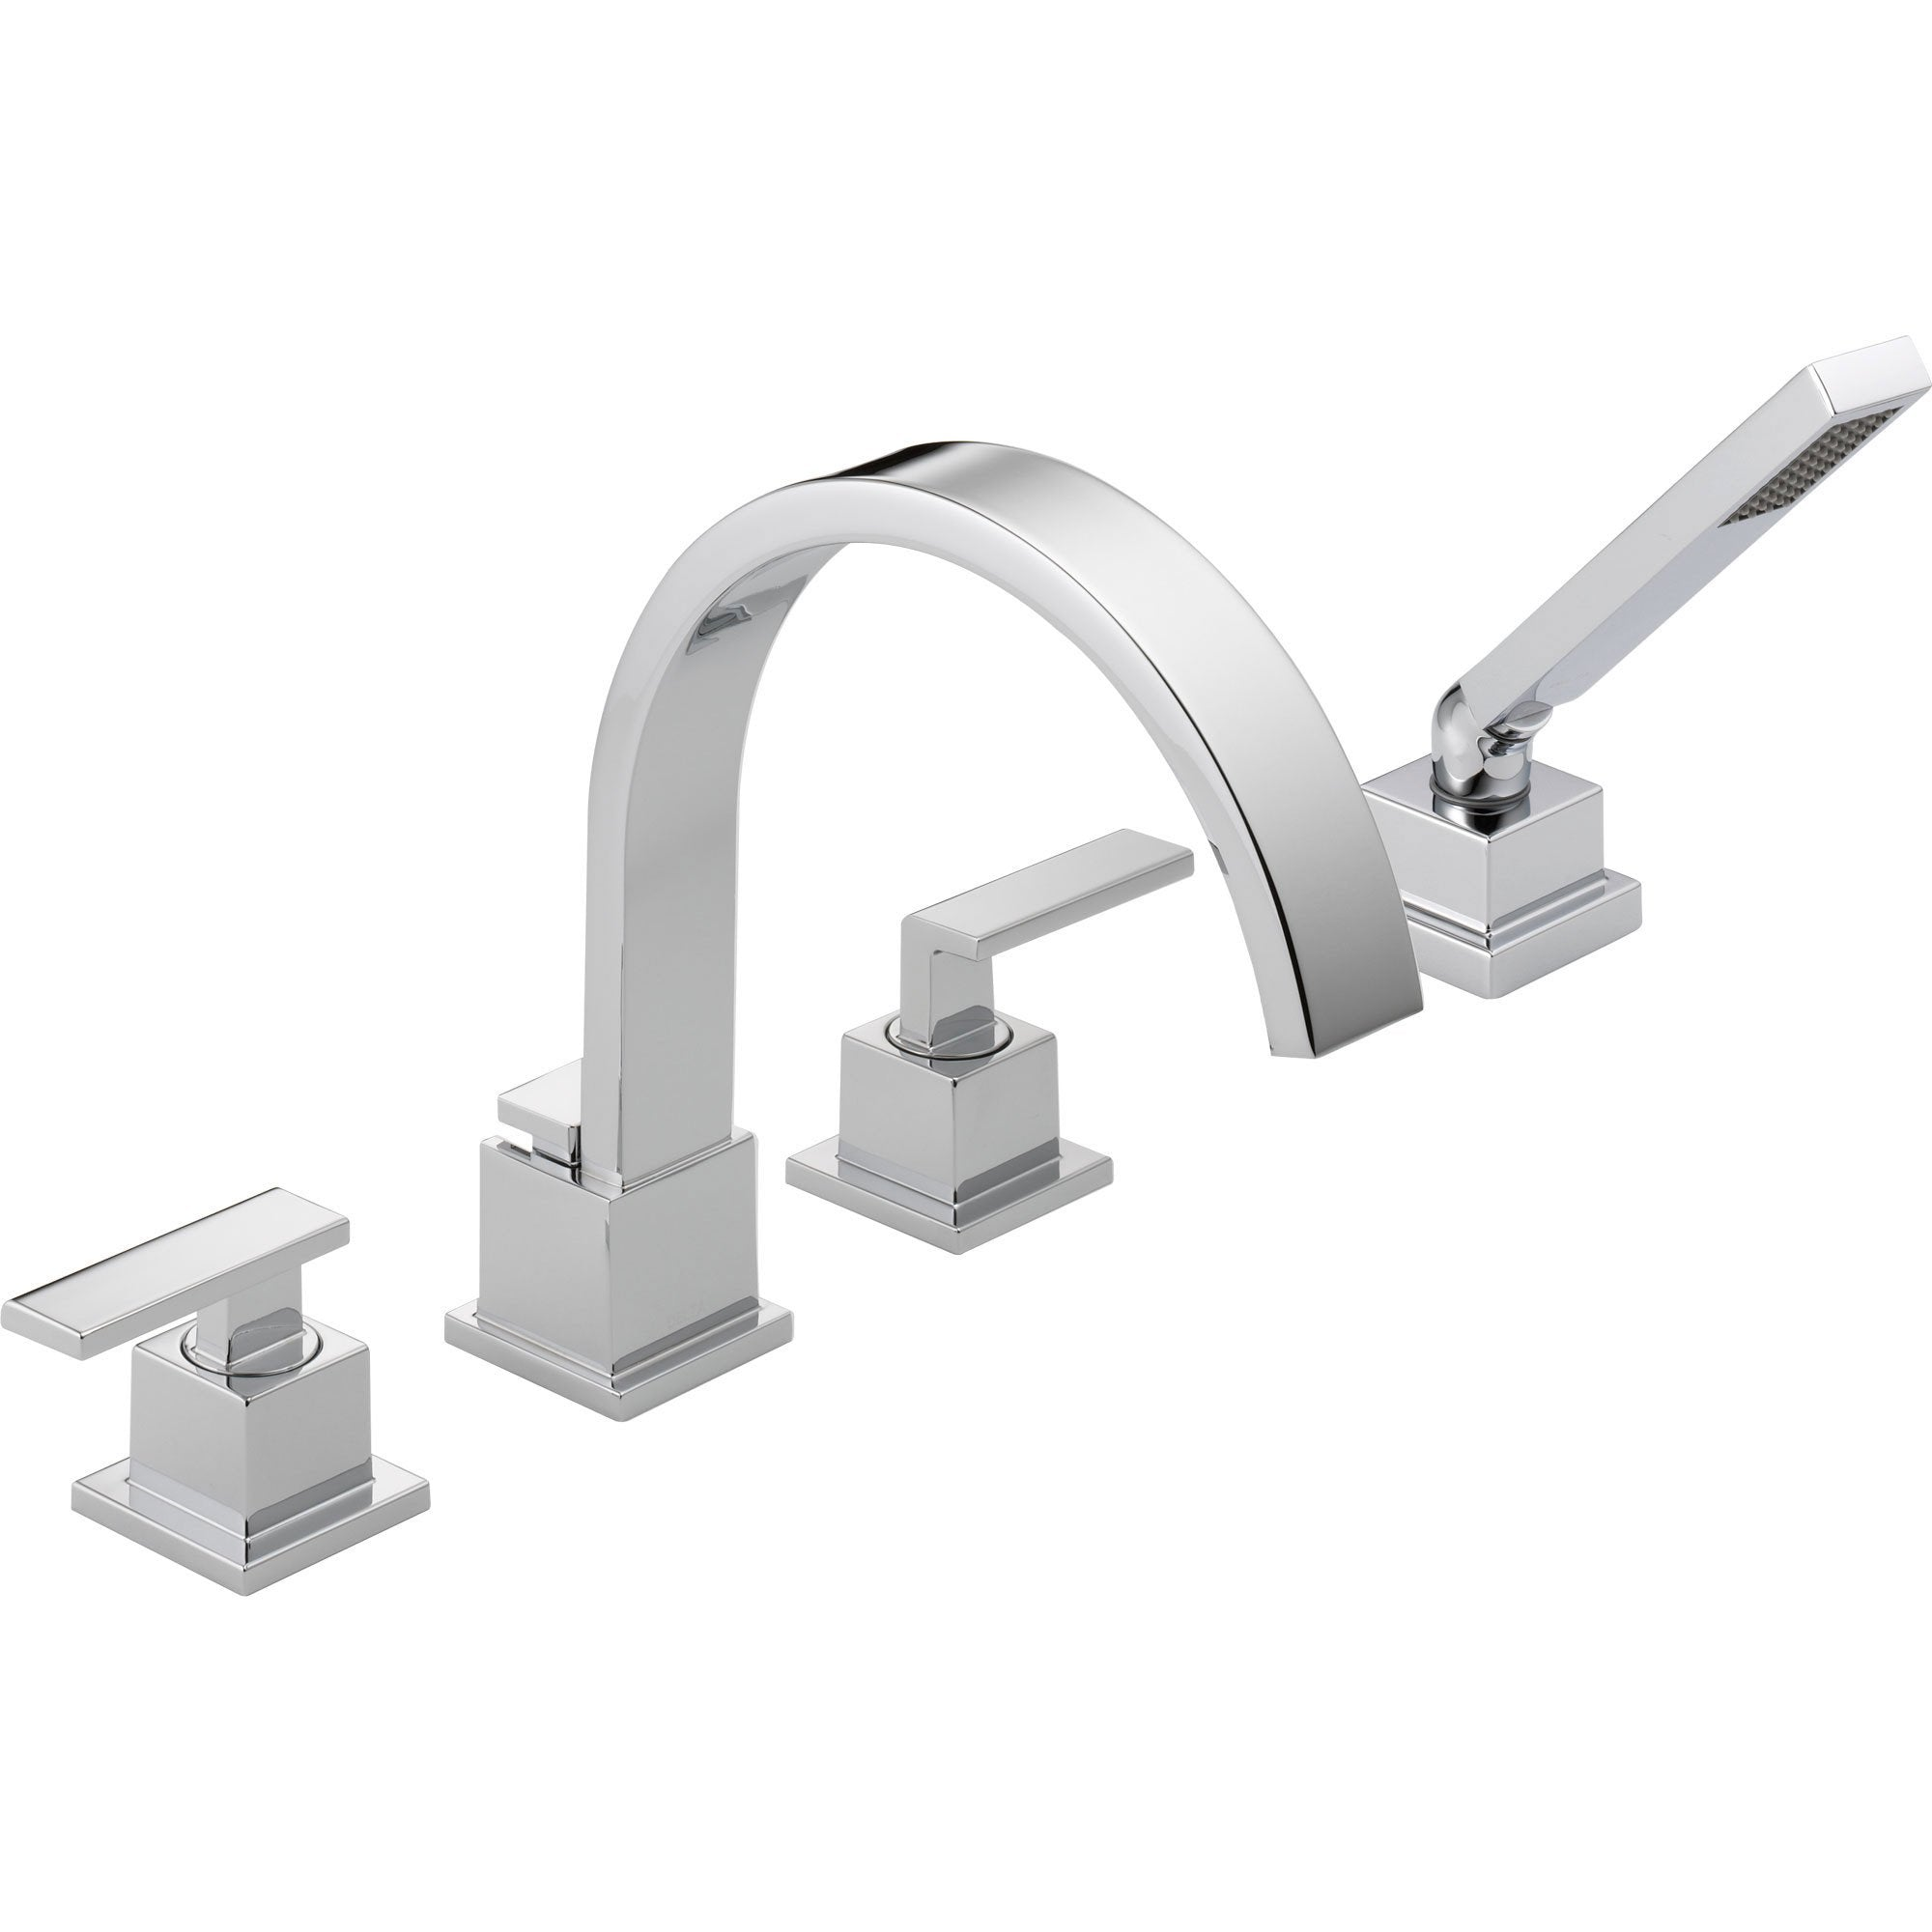 Delta Vero Deck-Mount Chrome Roman Tub Faucet Trim Kit with Handshower 521911